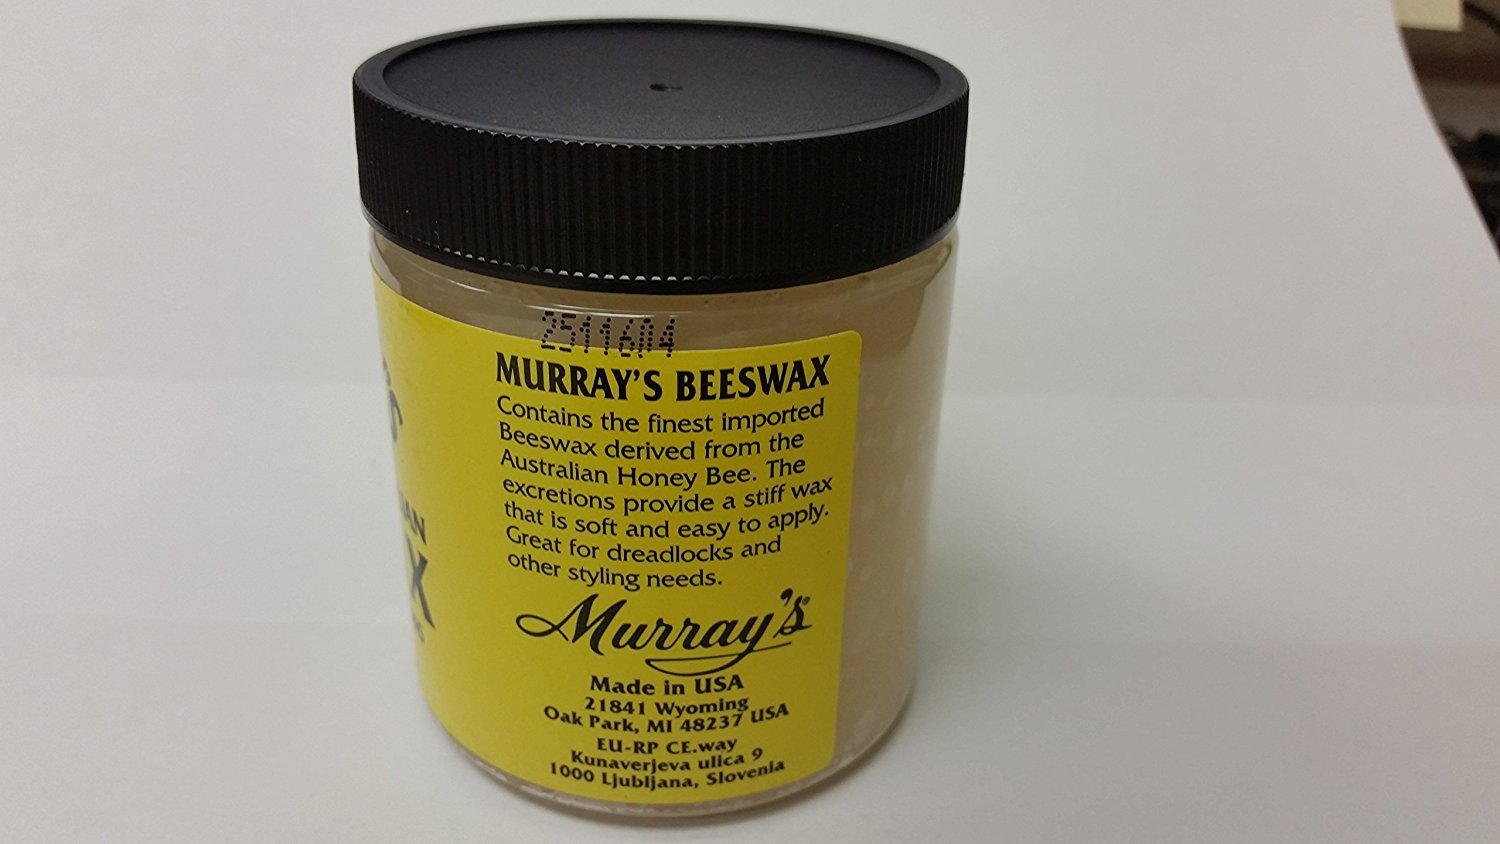 Murrays Beeswax 35oz Jar Amazoncouk Beauty